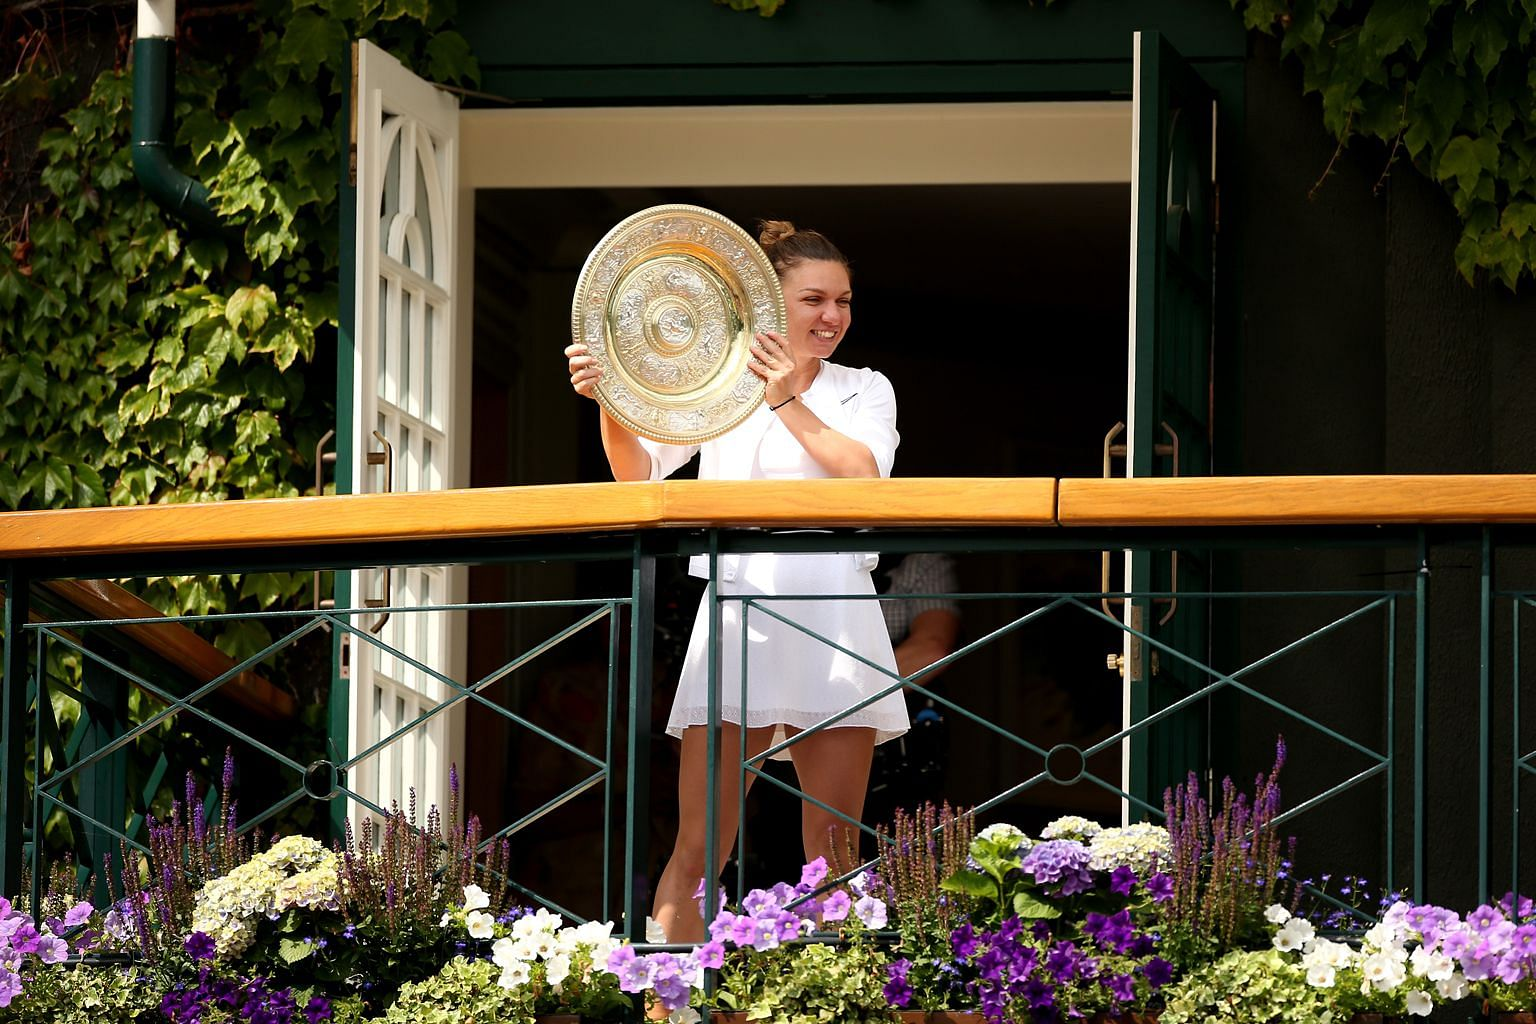 """Romanian tennis star Simona Halep with the Venus Rosewater Dish after beating fellow former world No. 1 Serena Williams in Saturday's Wimbledon women's singles final, which she described as """"the best match of my life""""."""